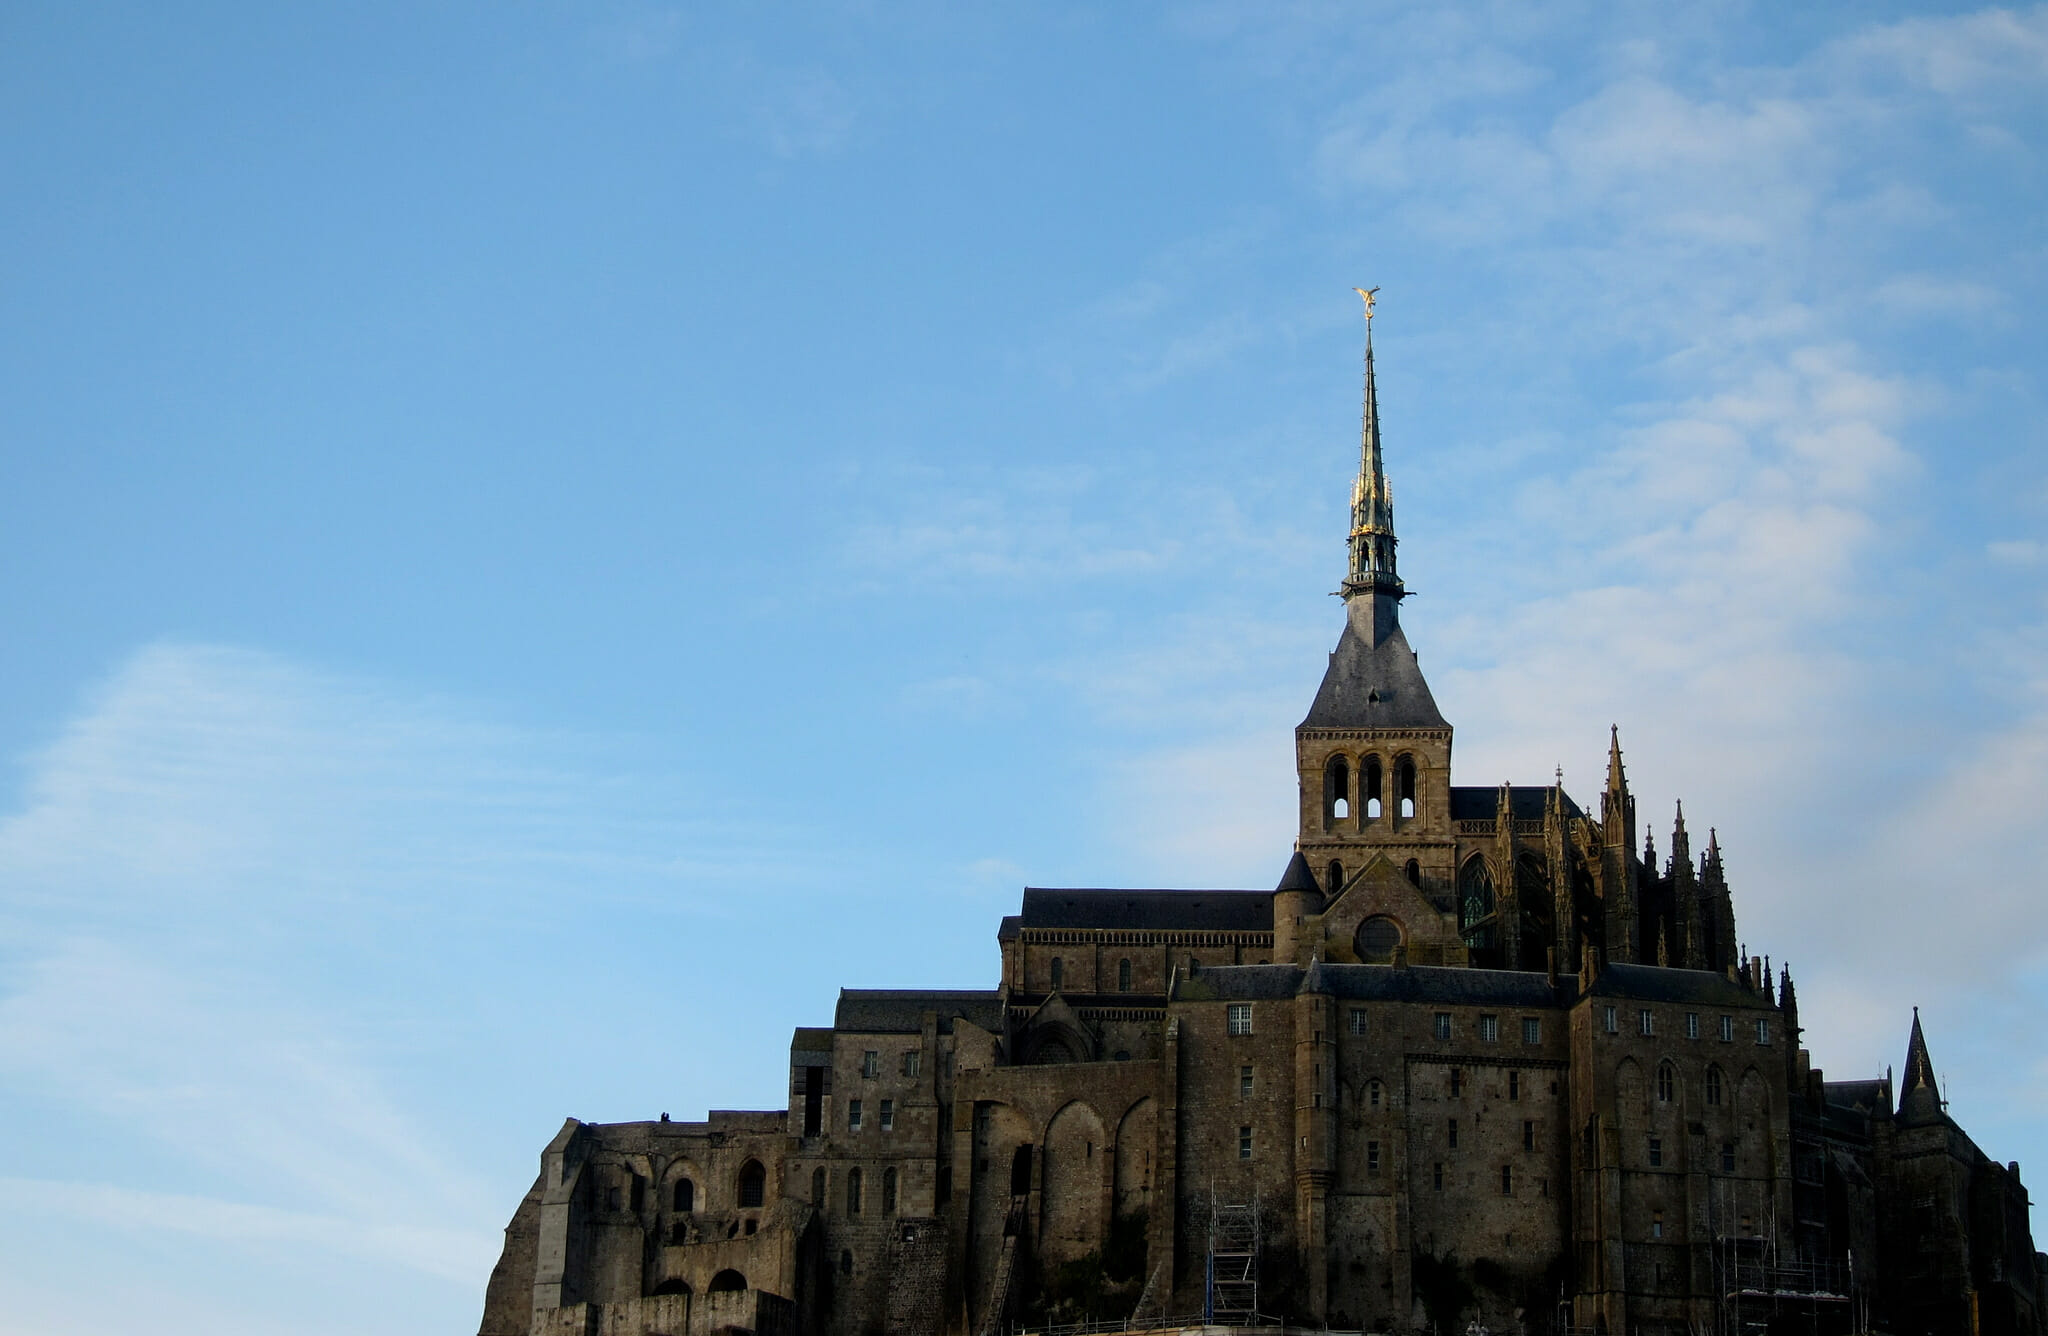 Mont Saint-Michel at golden hour on a clear winter day